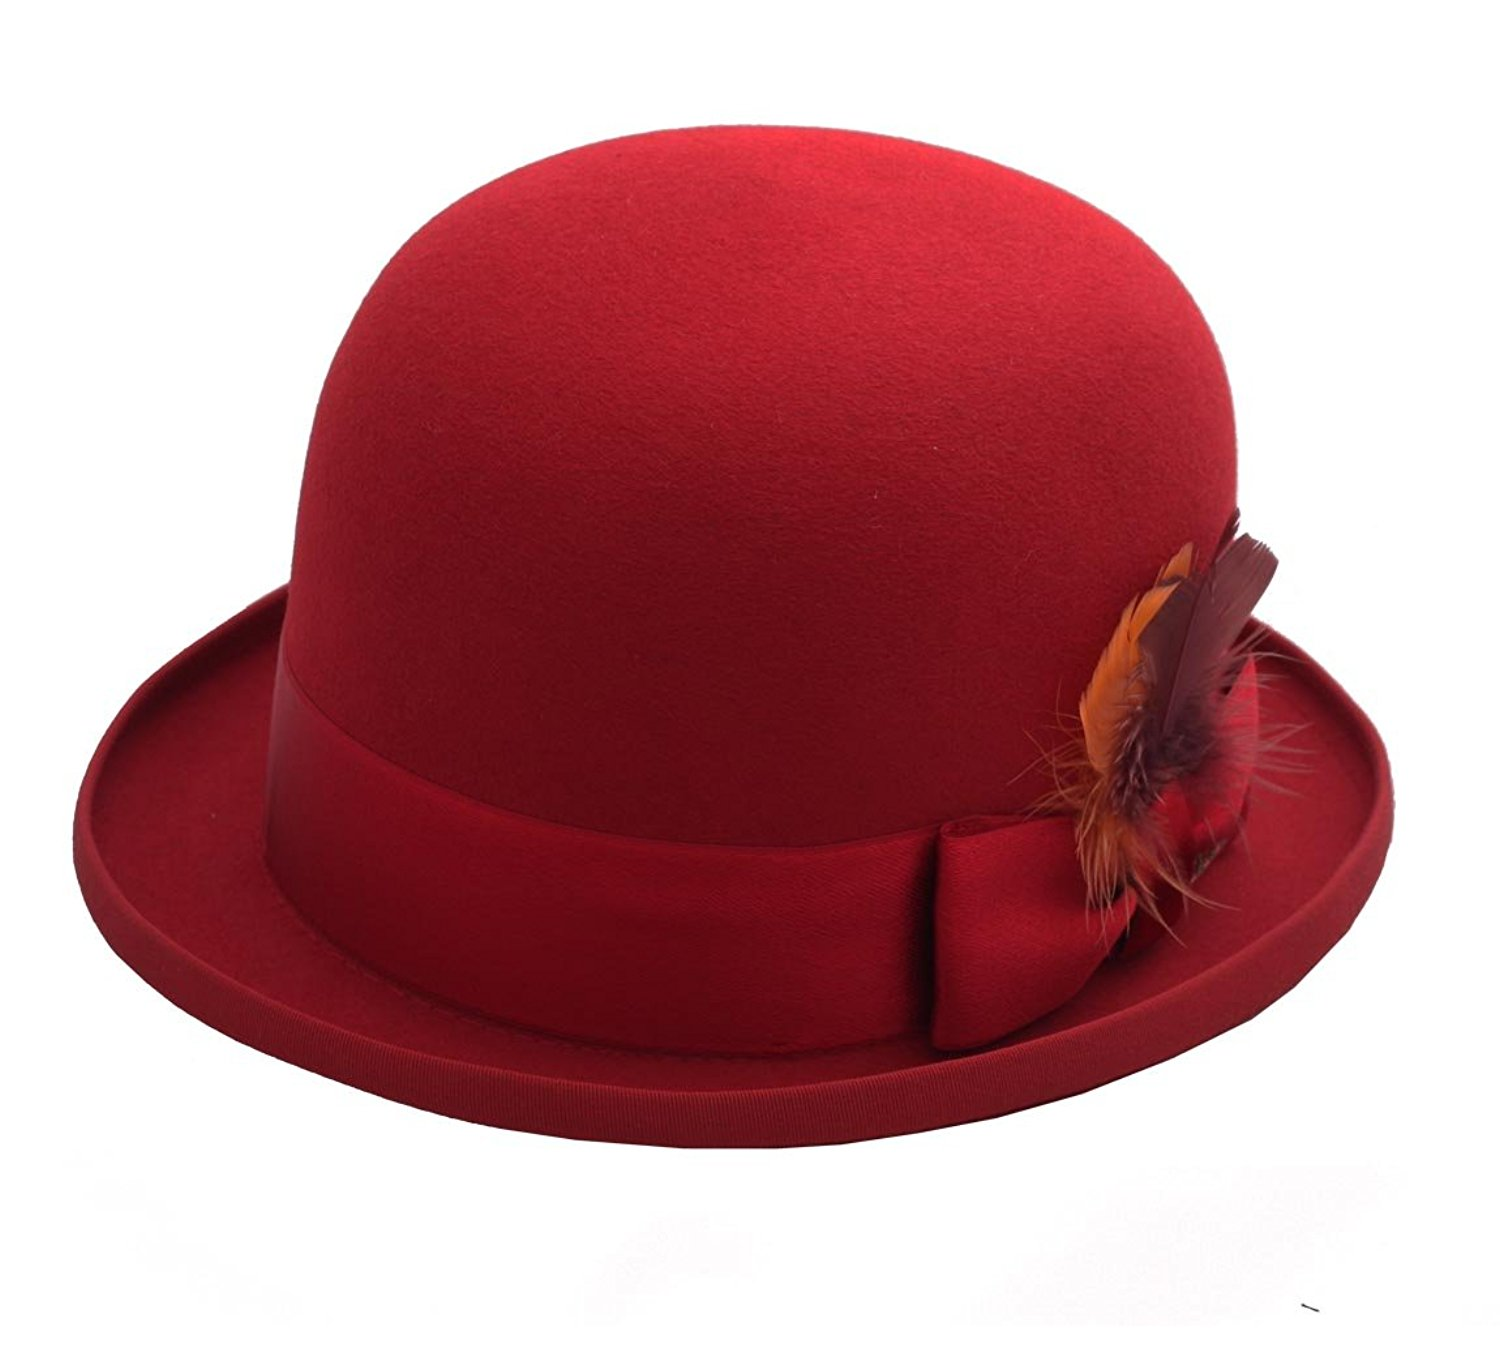 42b22d72312 Get Quotations · Stetson Ennio Furfelt Gambling Bowler Hat Size 59 Cm Red